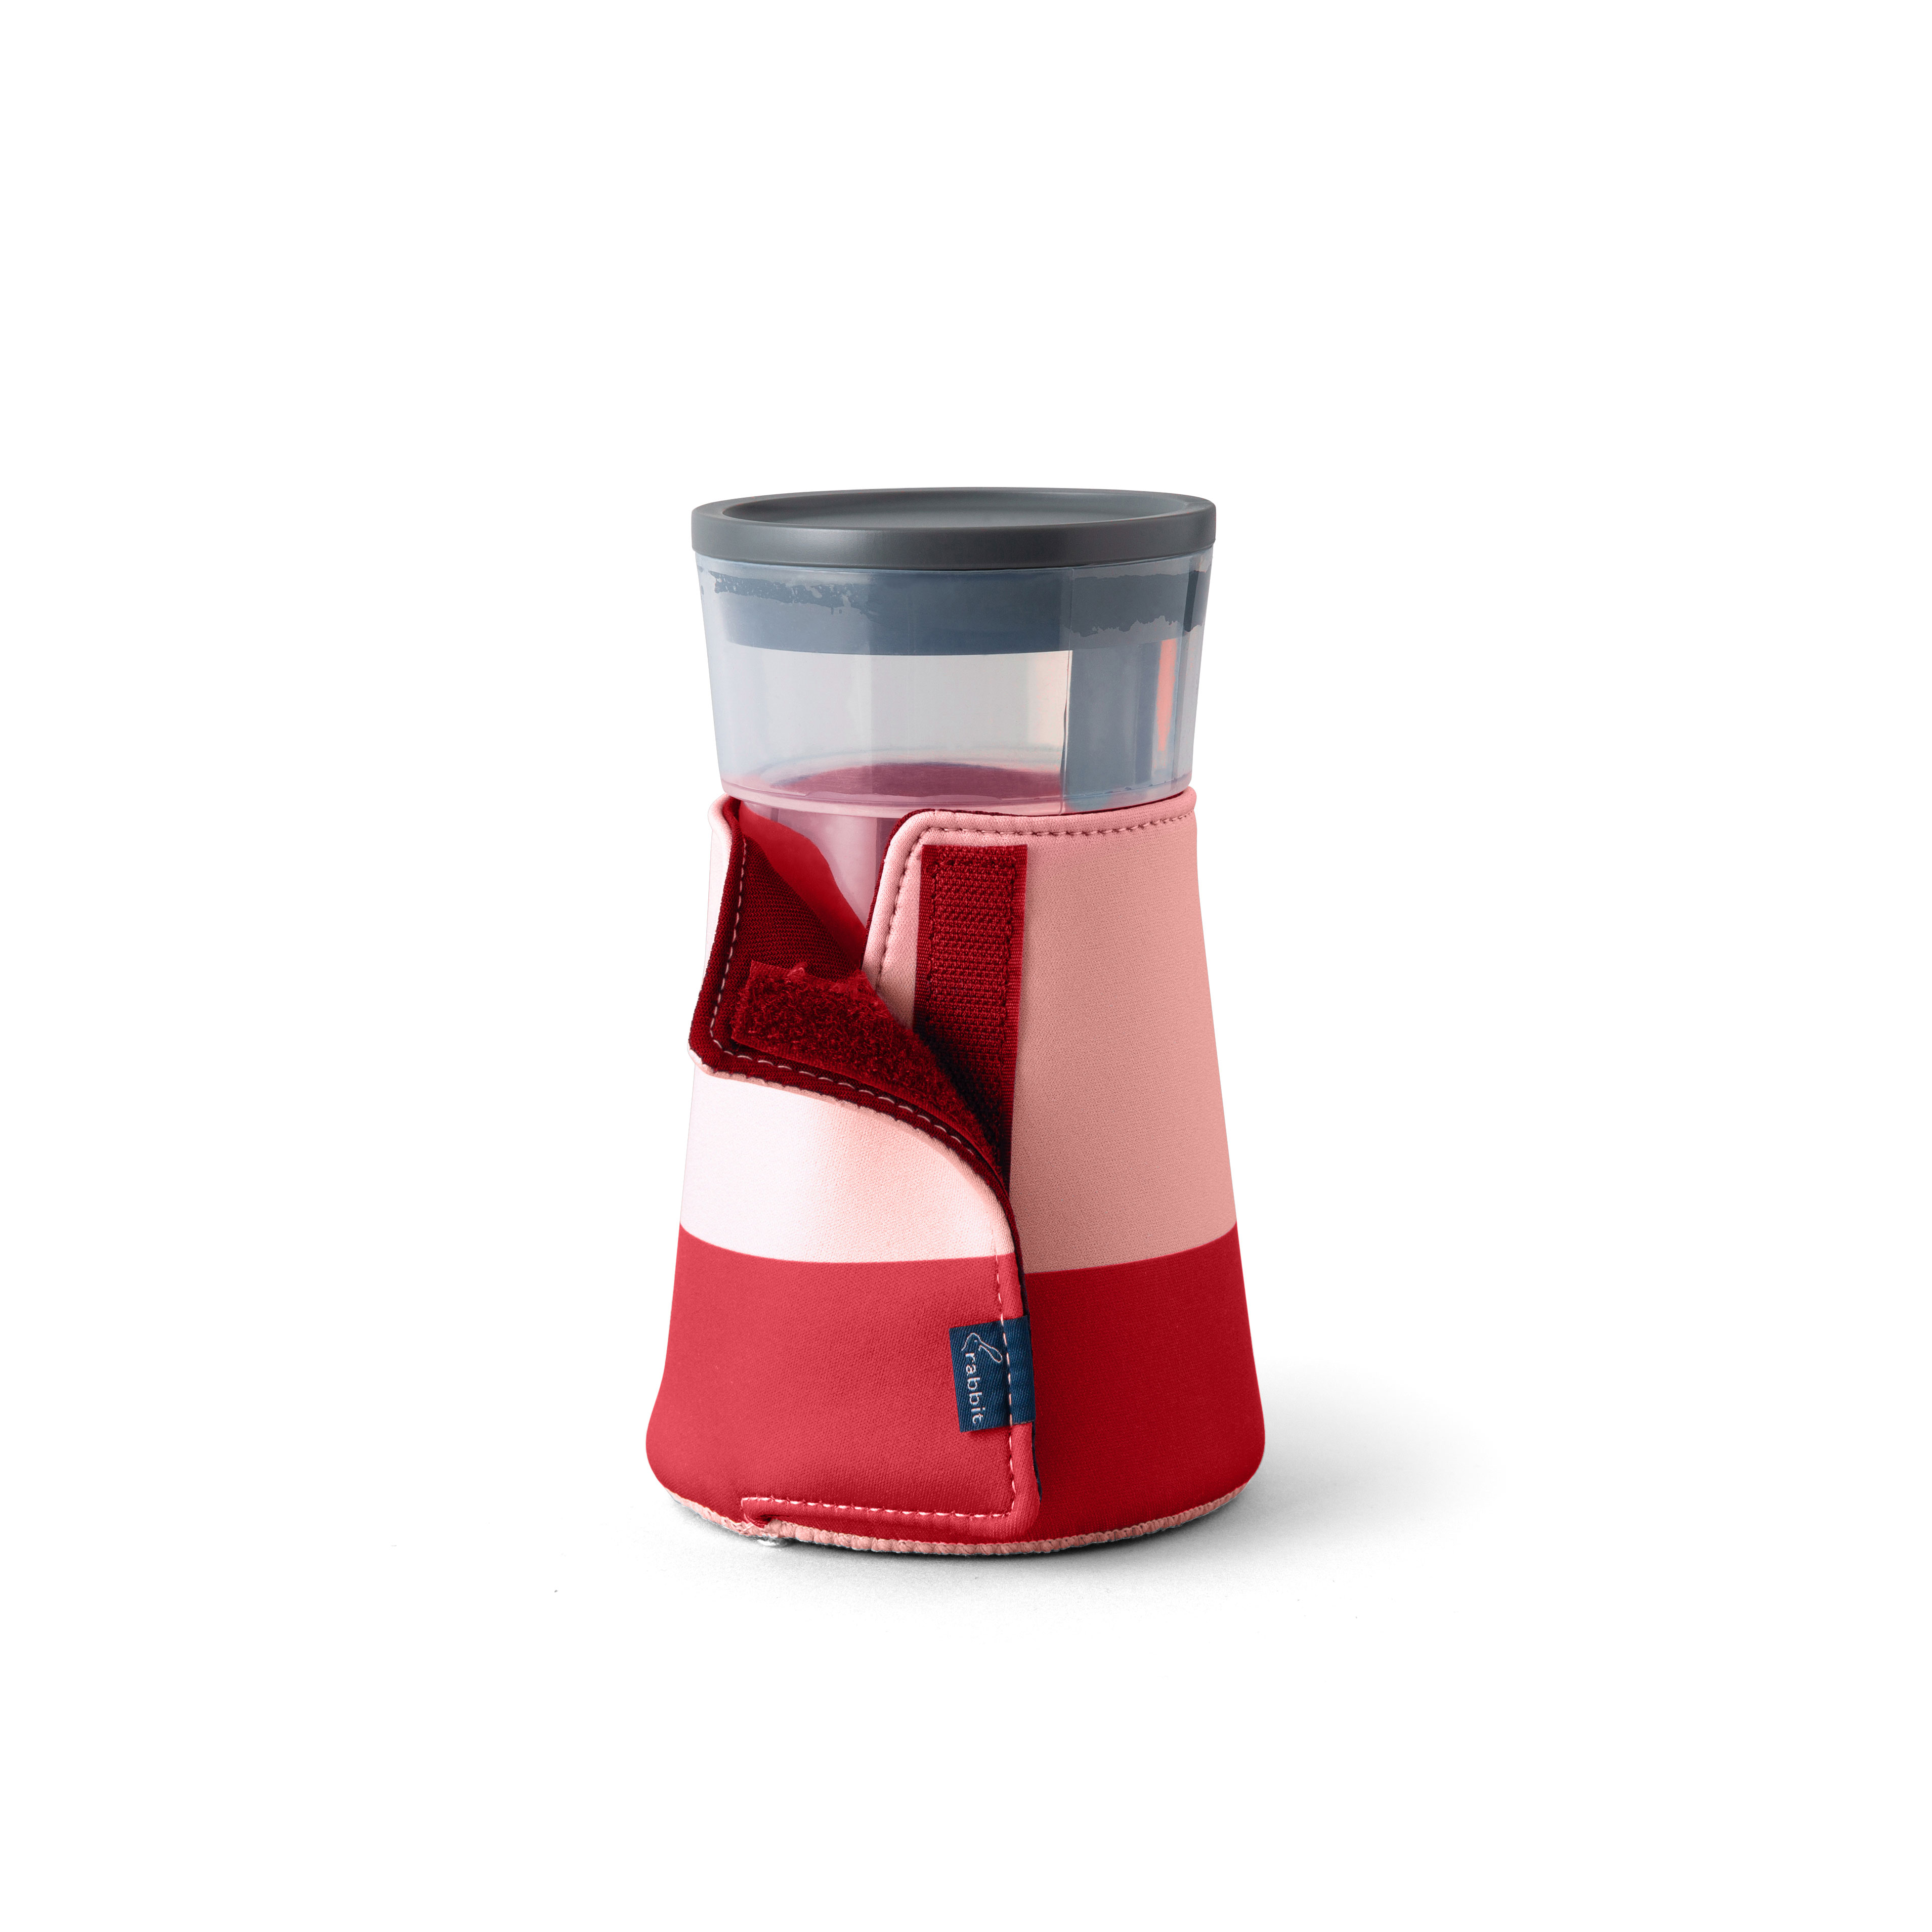 Freezable Cocktail Maker Mother's Day Gifts for the Foodie in Your Life - This must-have bar accessory from Rabbit is perfect for the mom who deserves a nice, cold drink. It easily makes frozen cocktails in your freezer – think margaritas, frosé, piña coladas and more – and comes with its own recipe booklet.